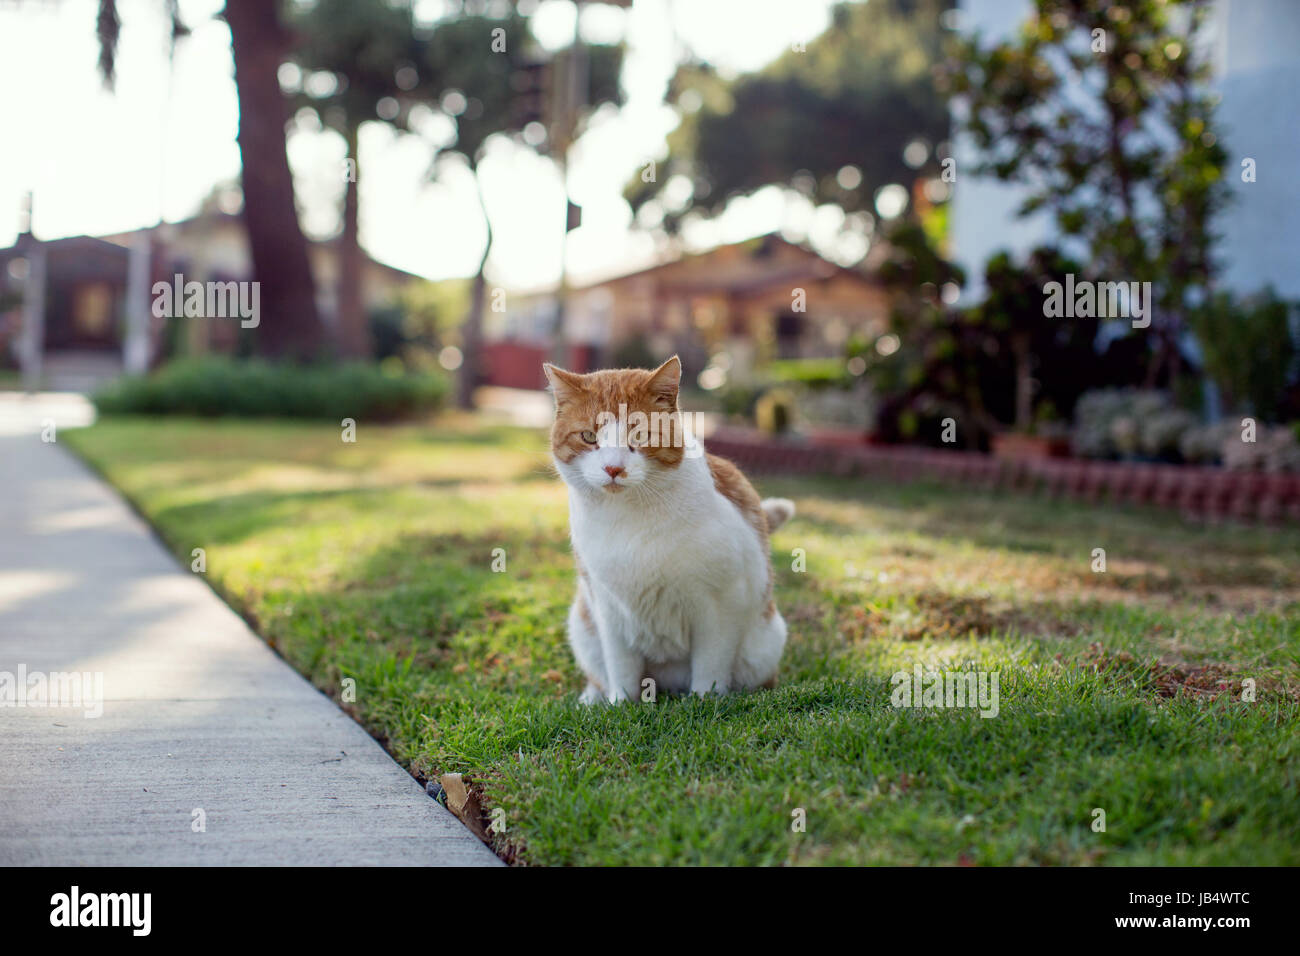 Orange and white tabby cat urinating on a front lawn while looking at camera. Golden light, sunny afternoon. Stock Photo